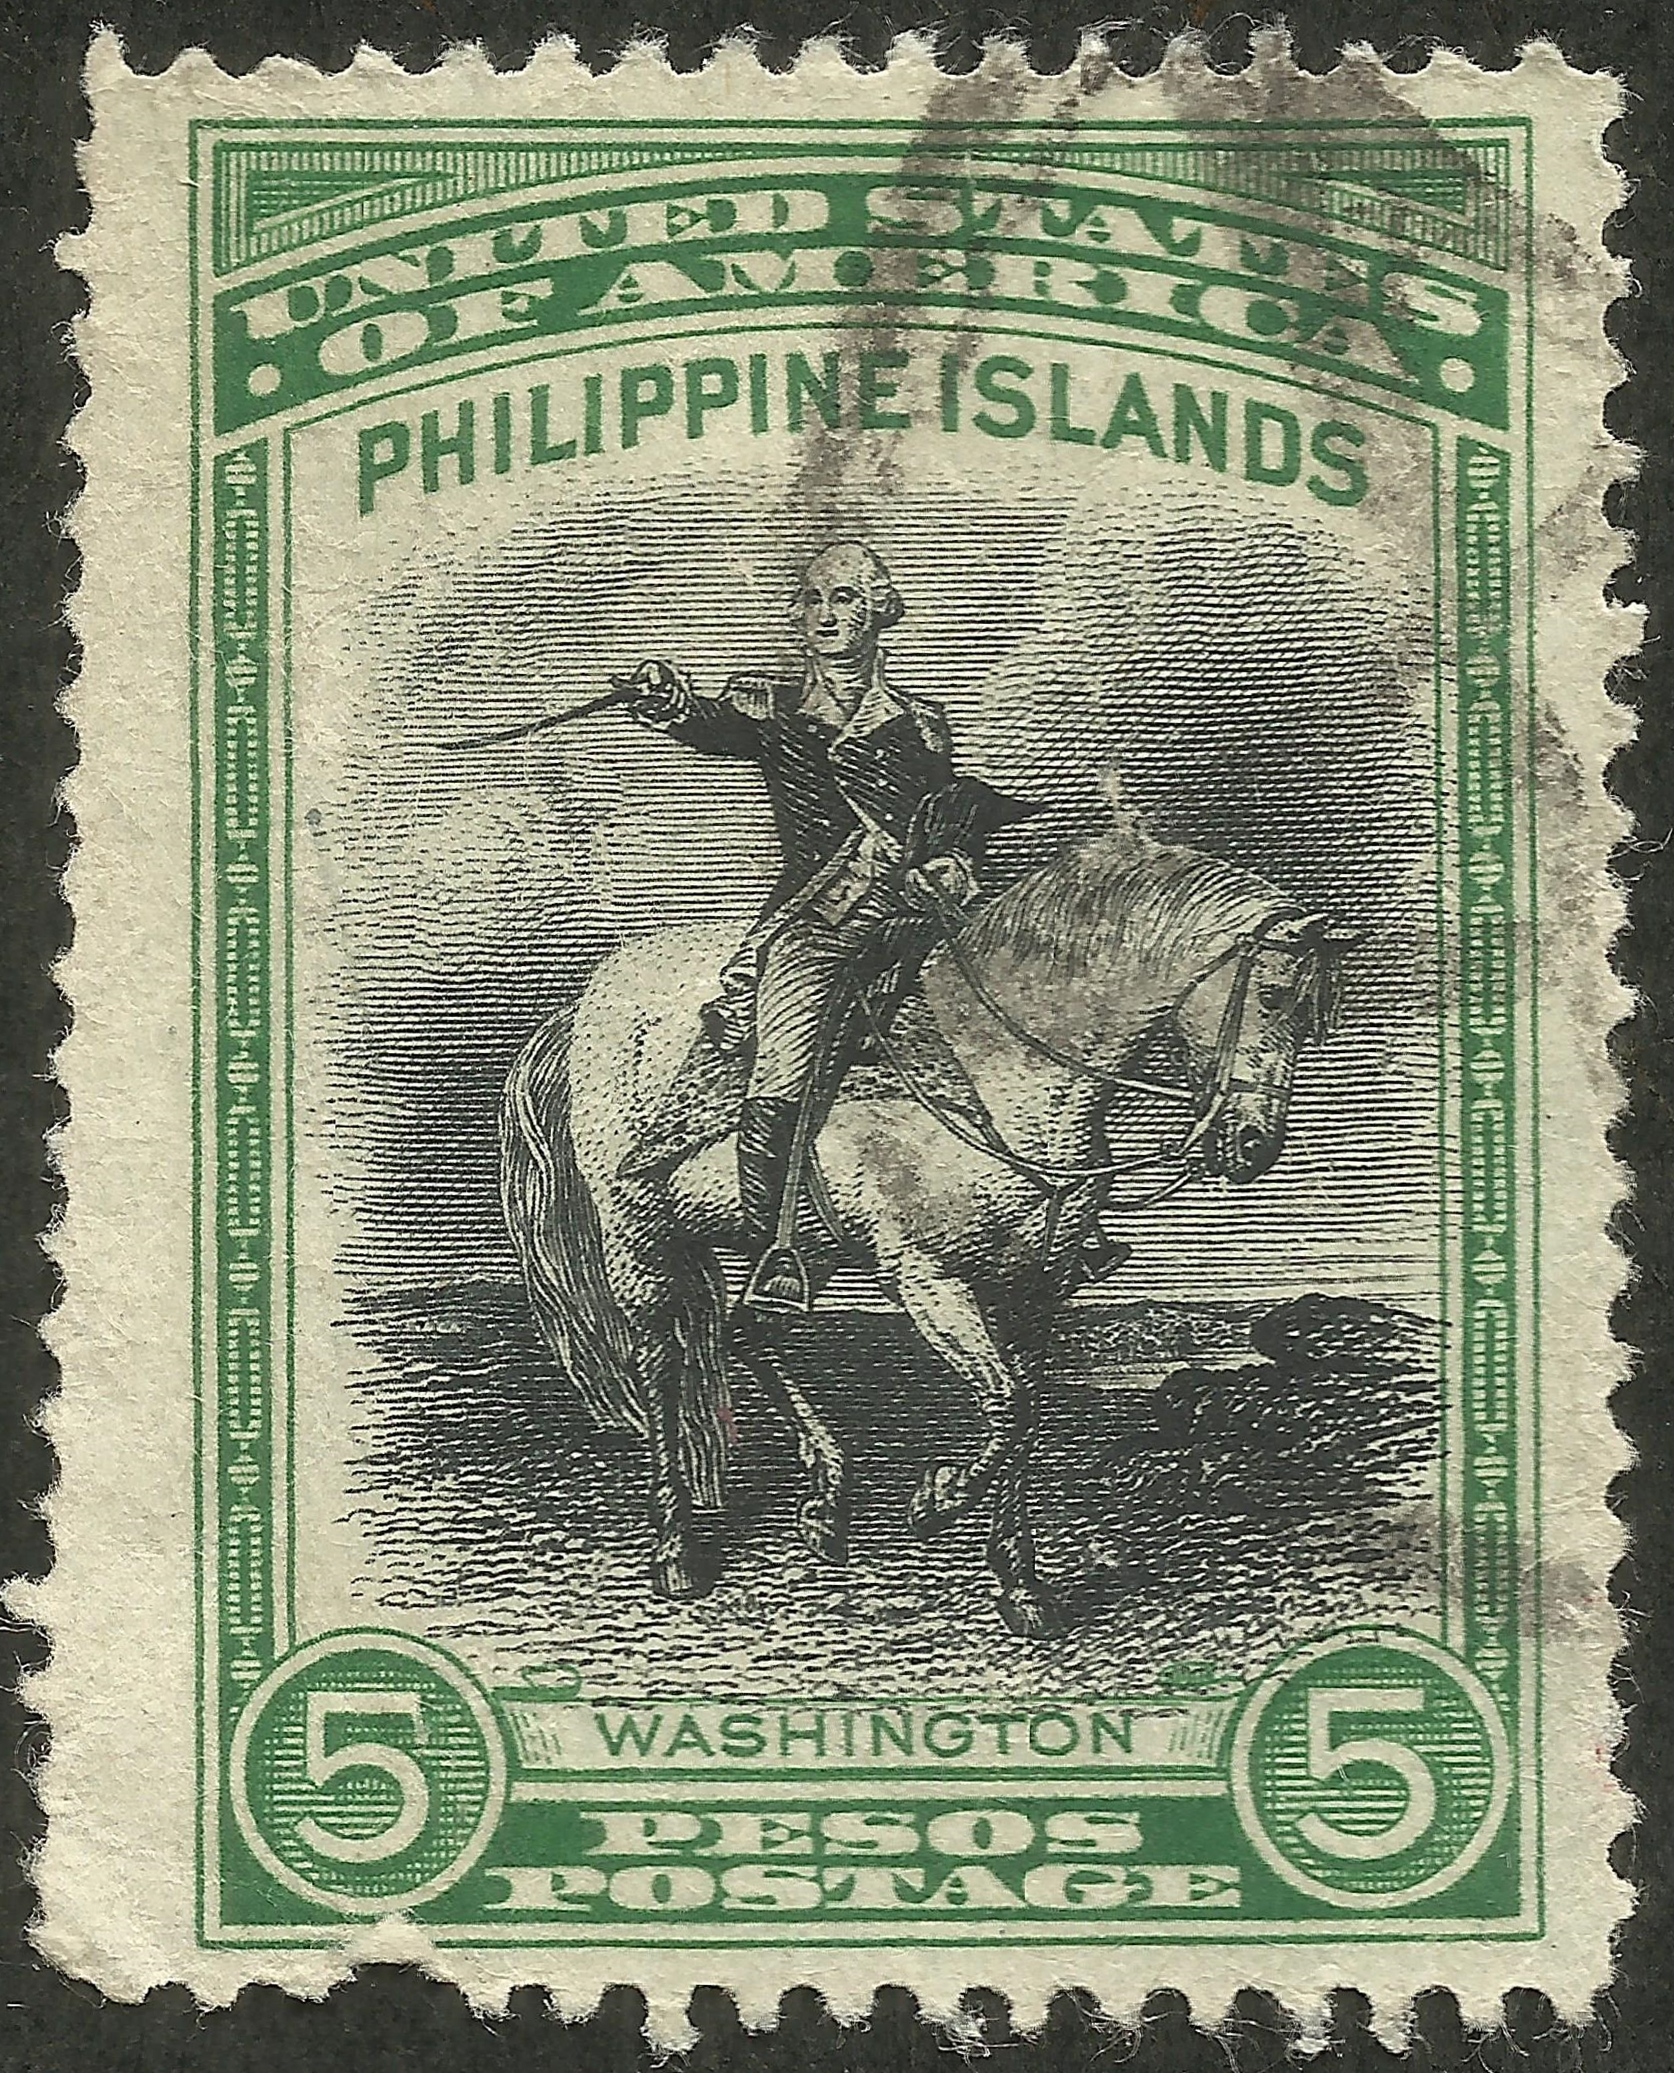 Insular Government of The Philippine Islands #396 (1935)